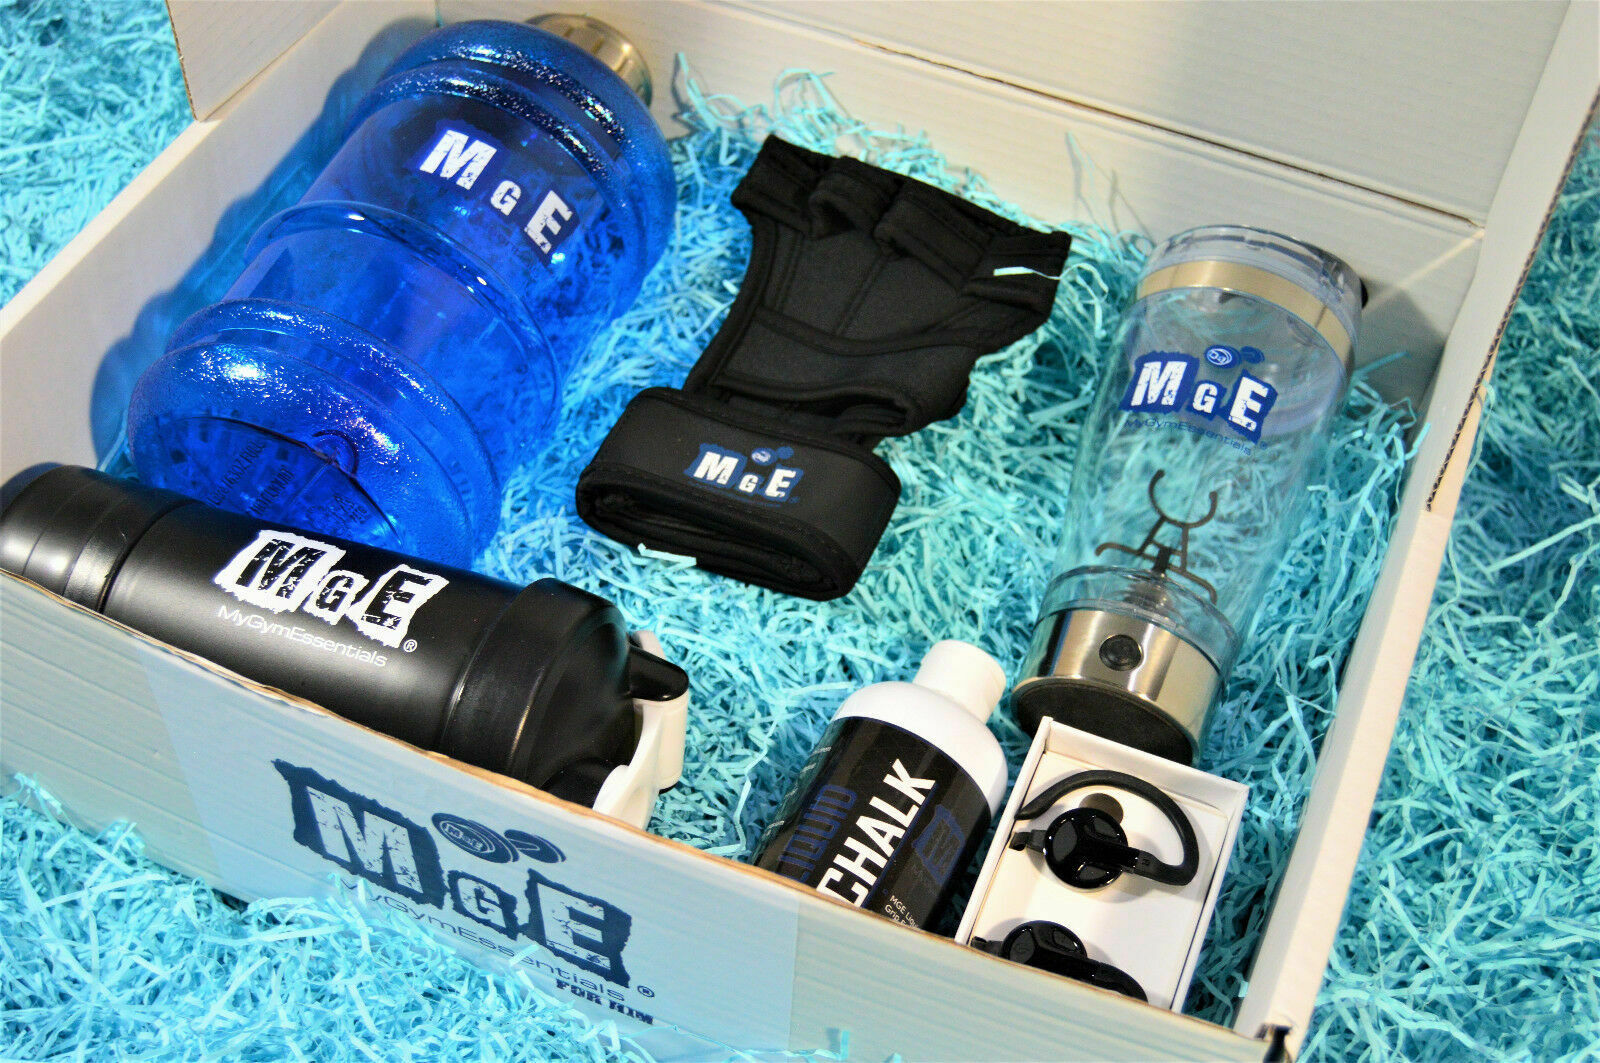 Gym Fitness Bundle Gift Box - Sports, Weight Lifiting, Training (MGE) - FOR HIM